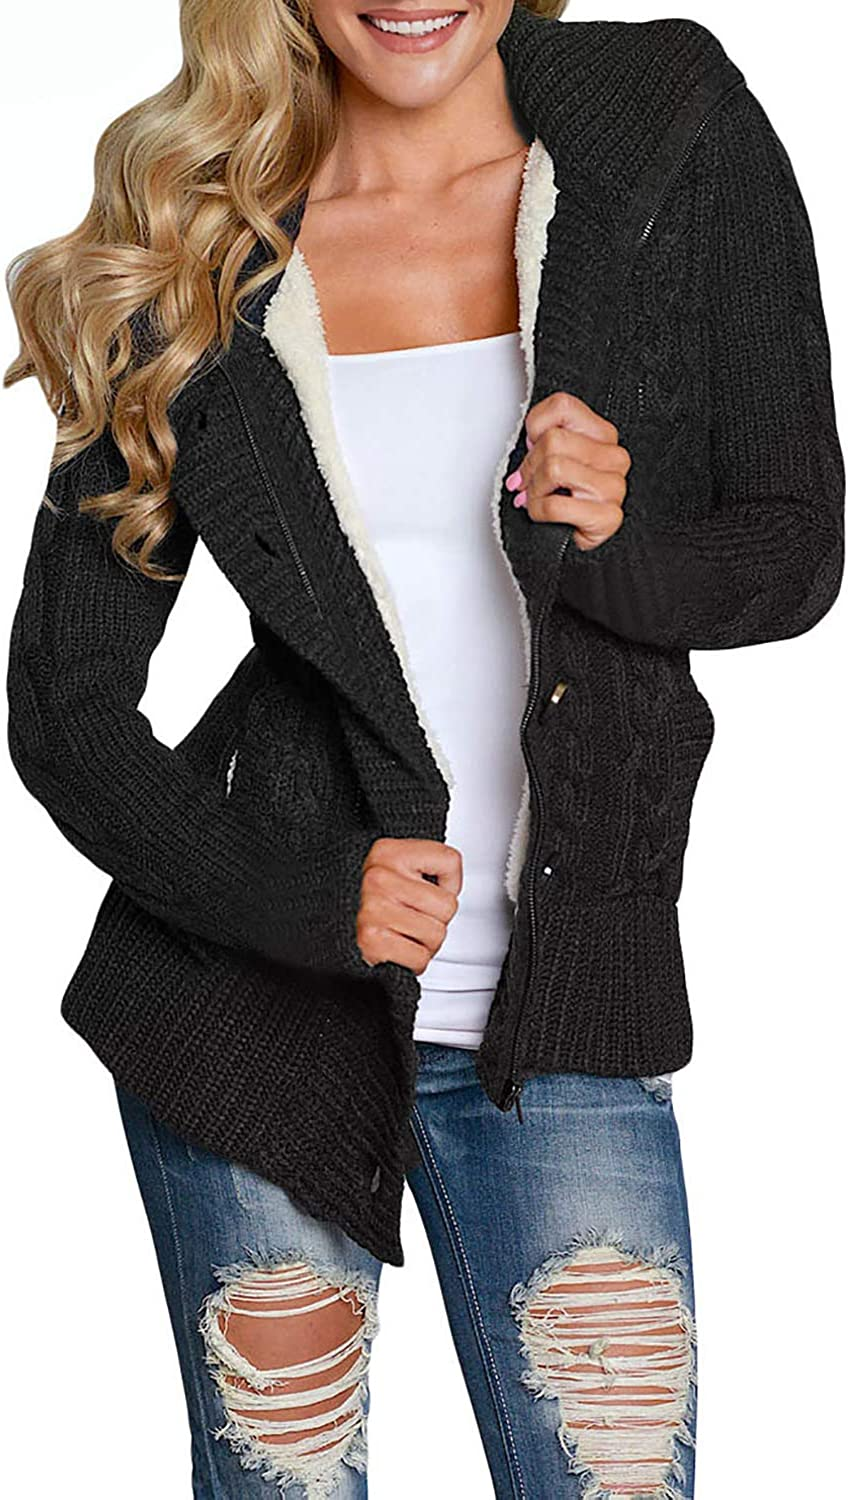 Asvivid Womens Button Down Cable Knit Cardigans Fleece Hooded Sweater Coats with Pockets